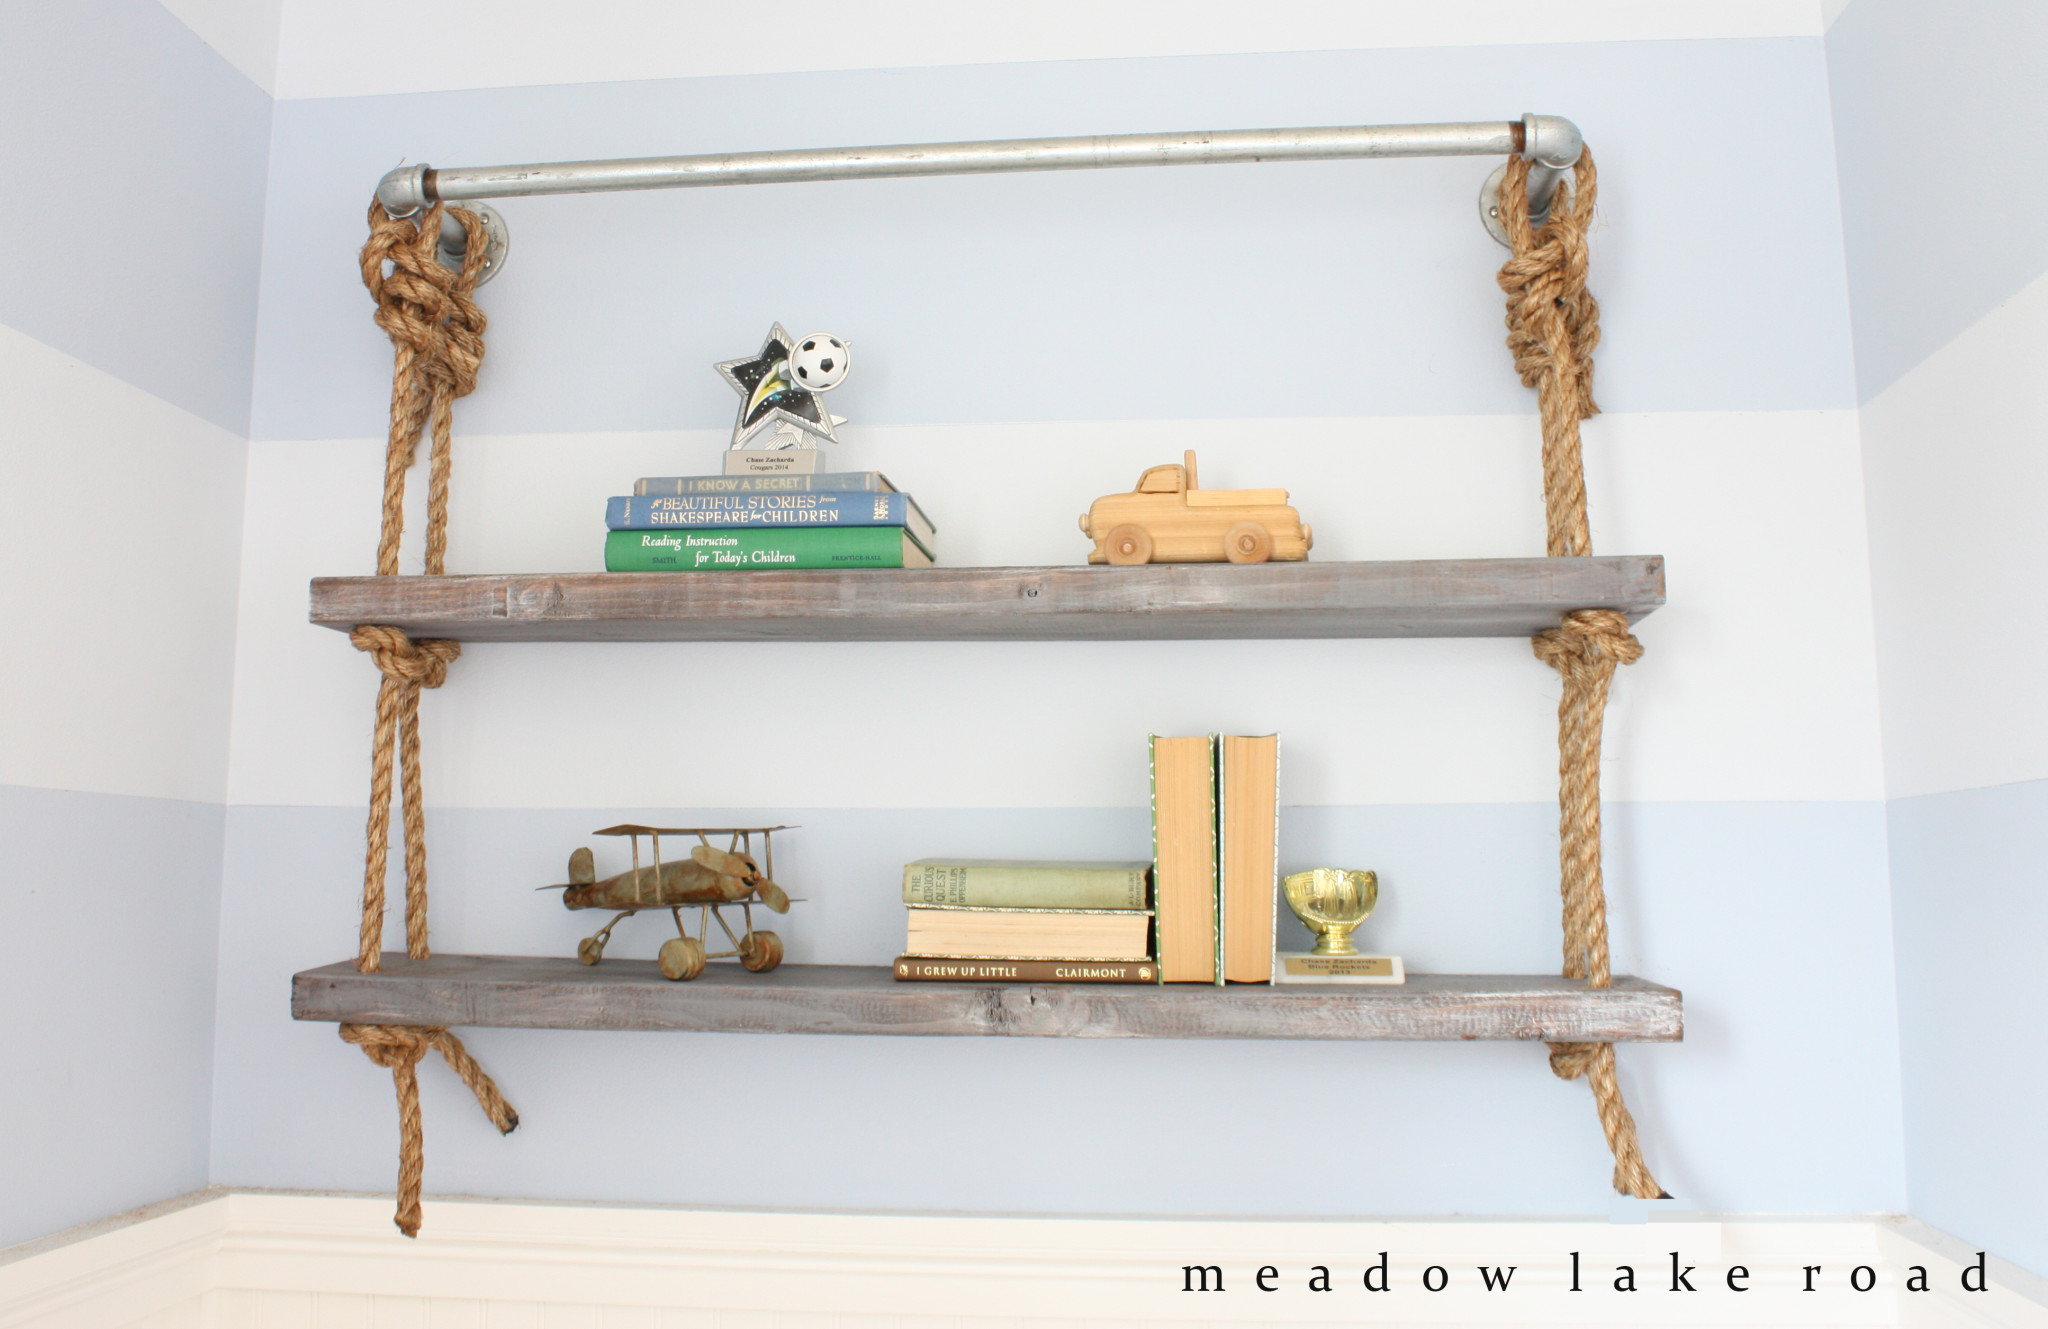 These shelves hung by a metal fishing rod are unique and mix farmhouse with industrial.